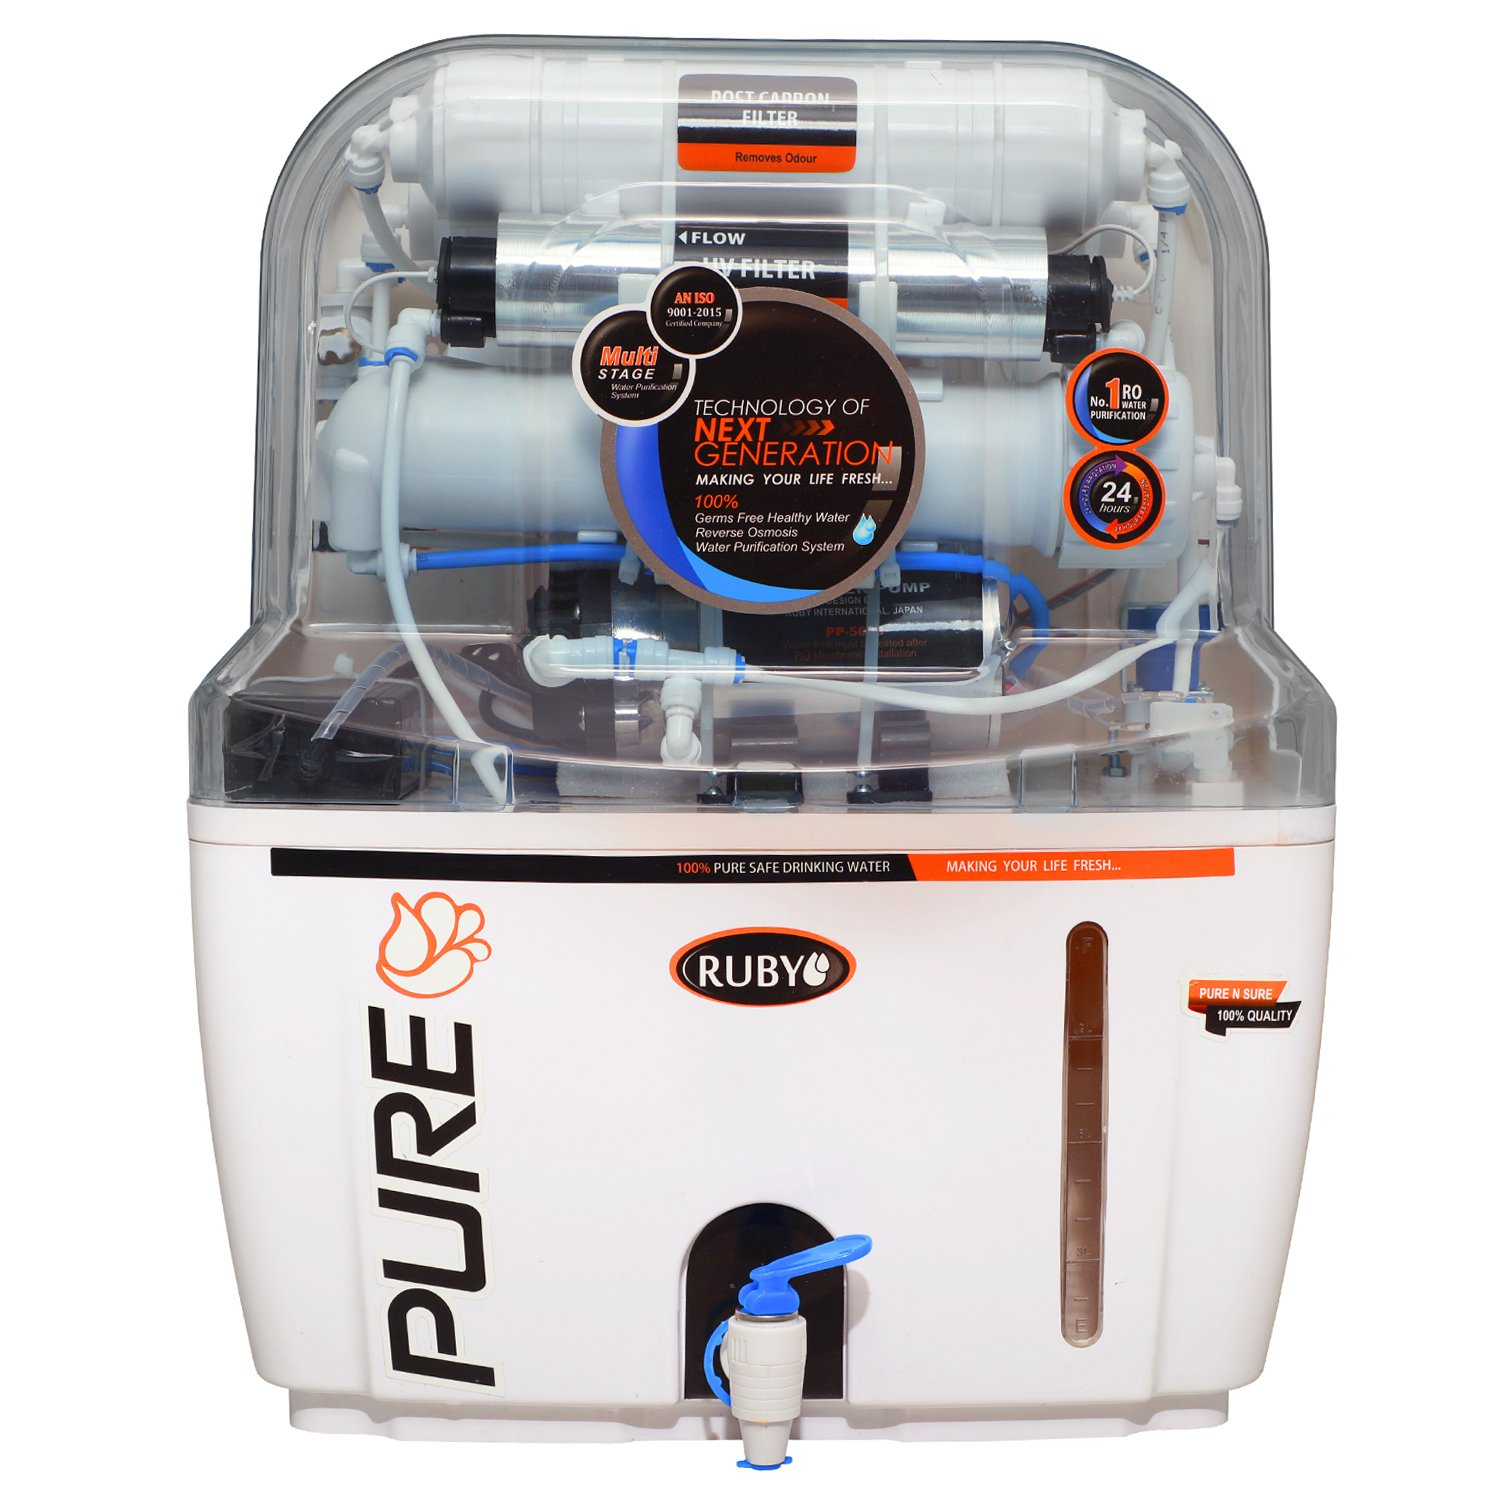 Ruby Economical Multi-stage Water Purifier